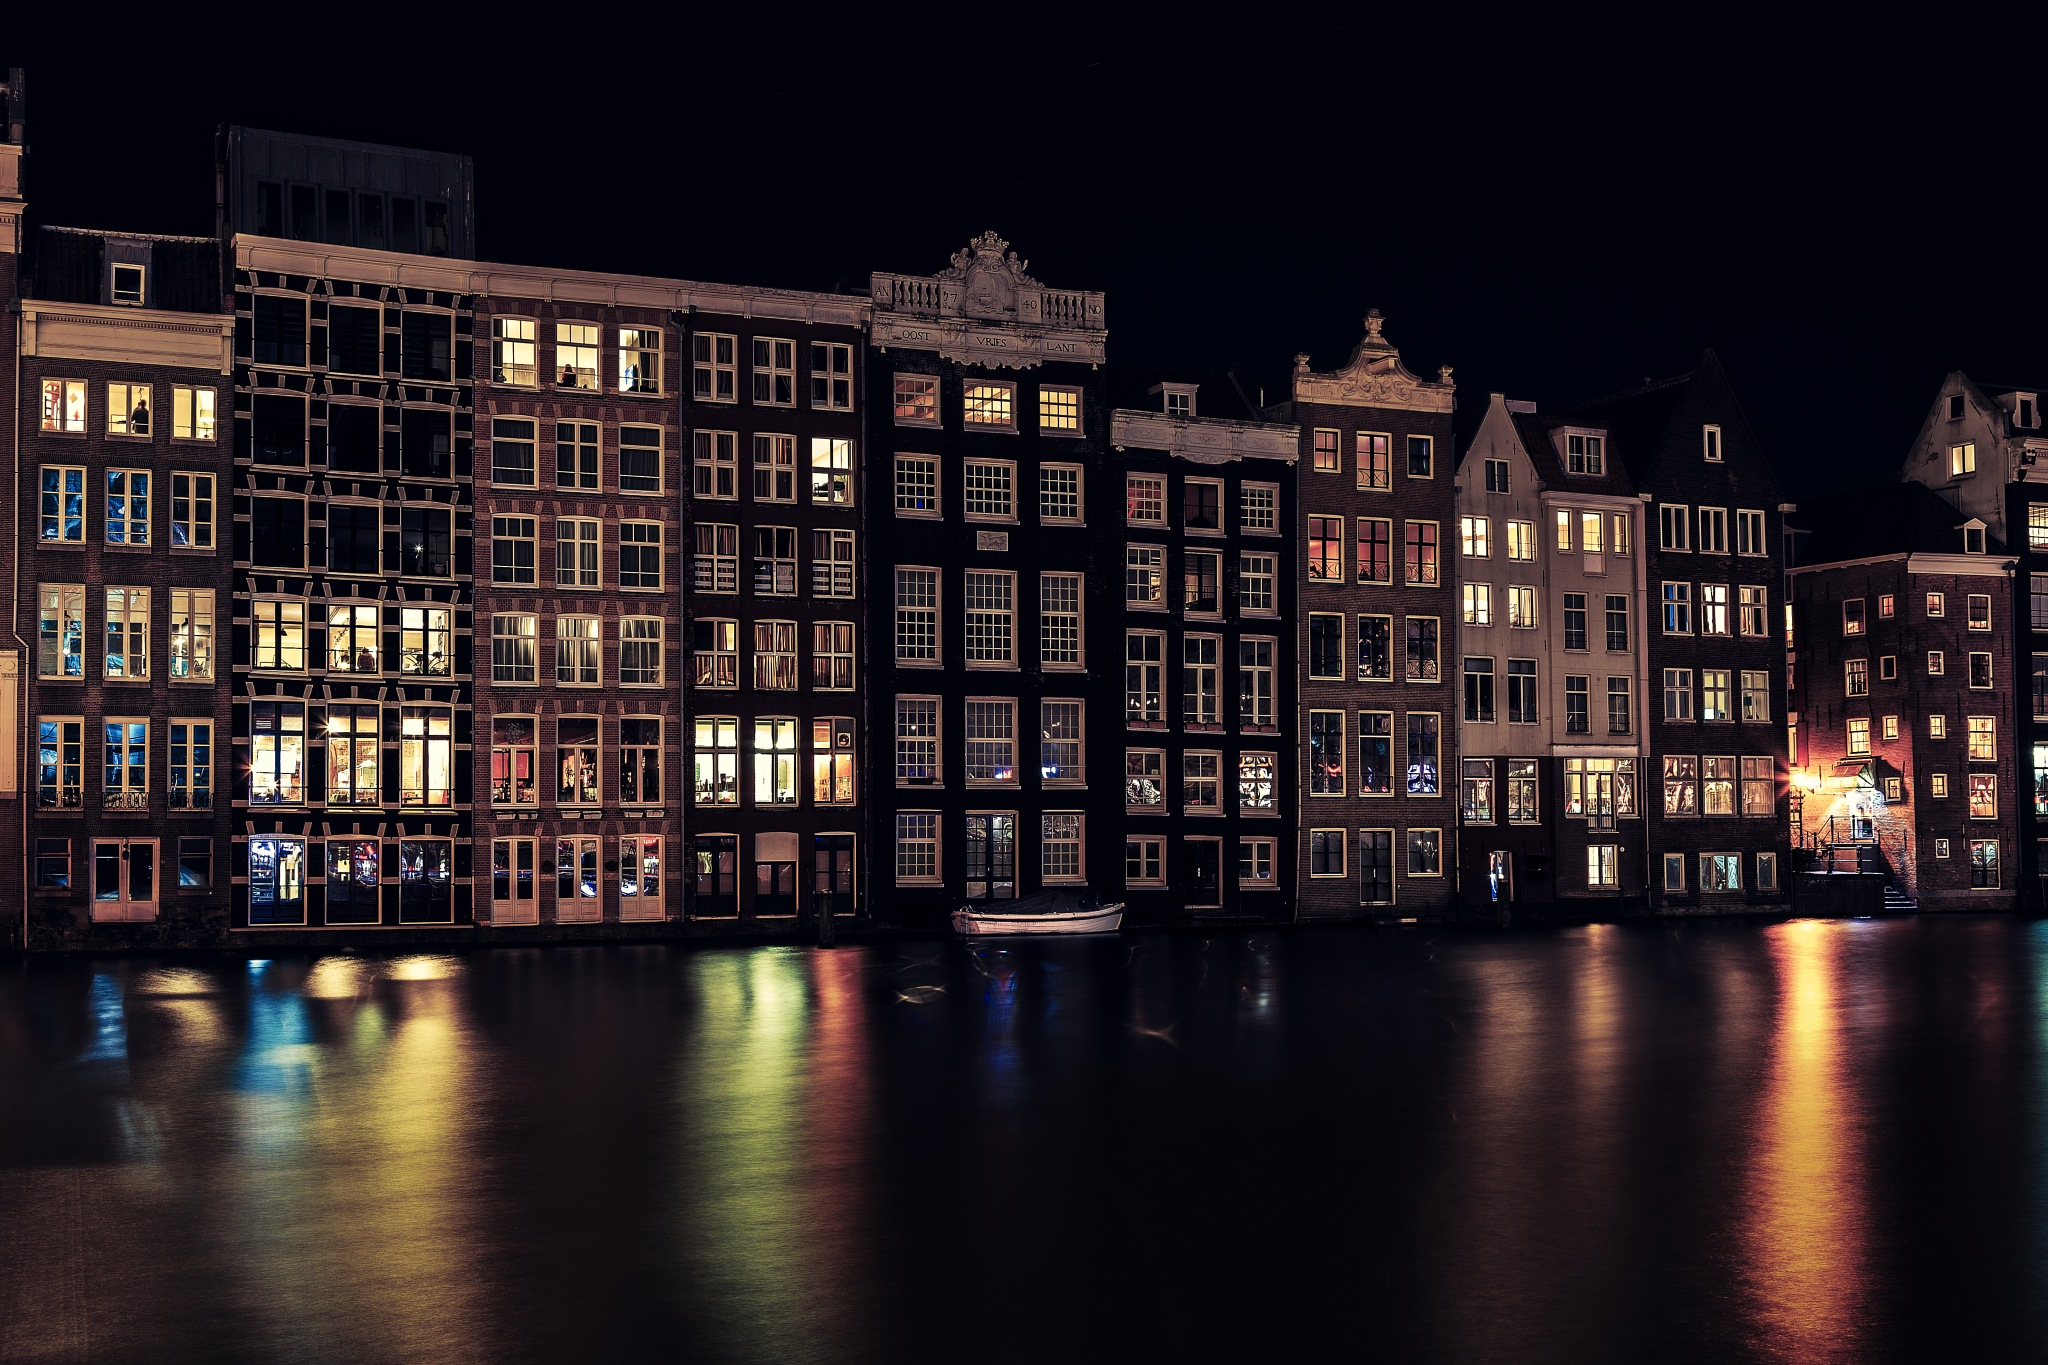 Beautiful Cold Night at Amsterdam by Hameed S